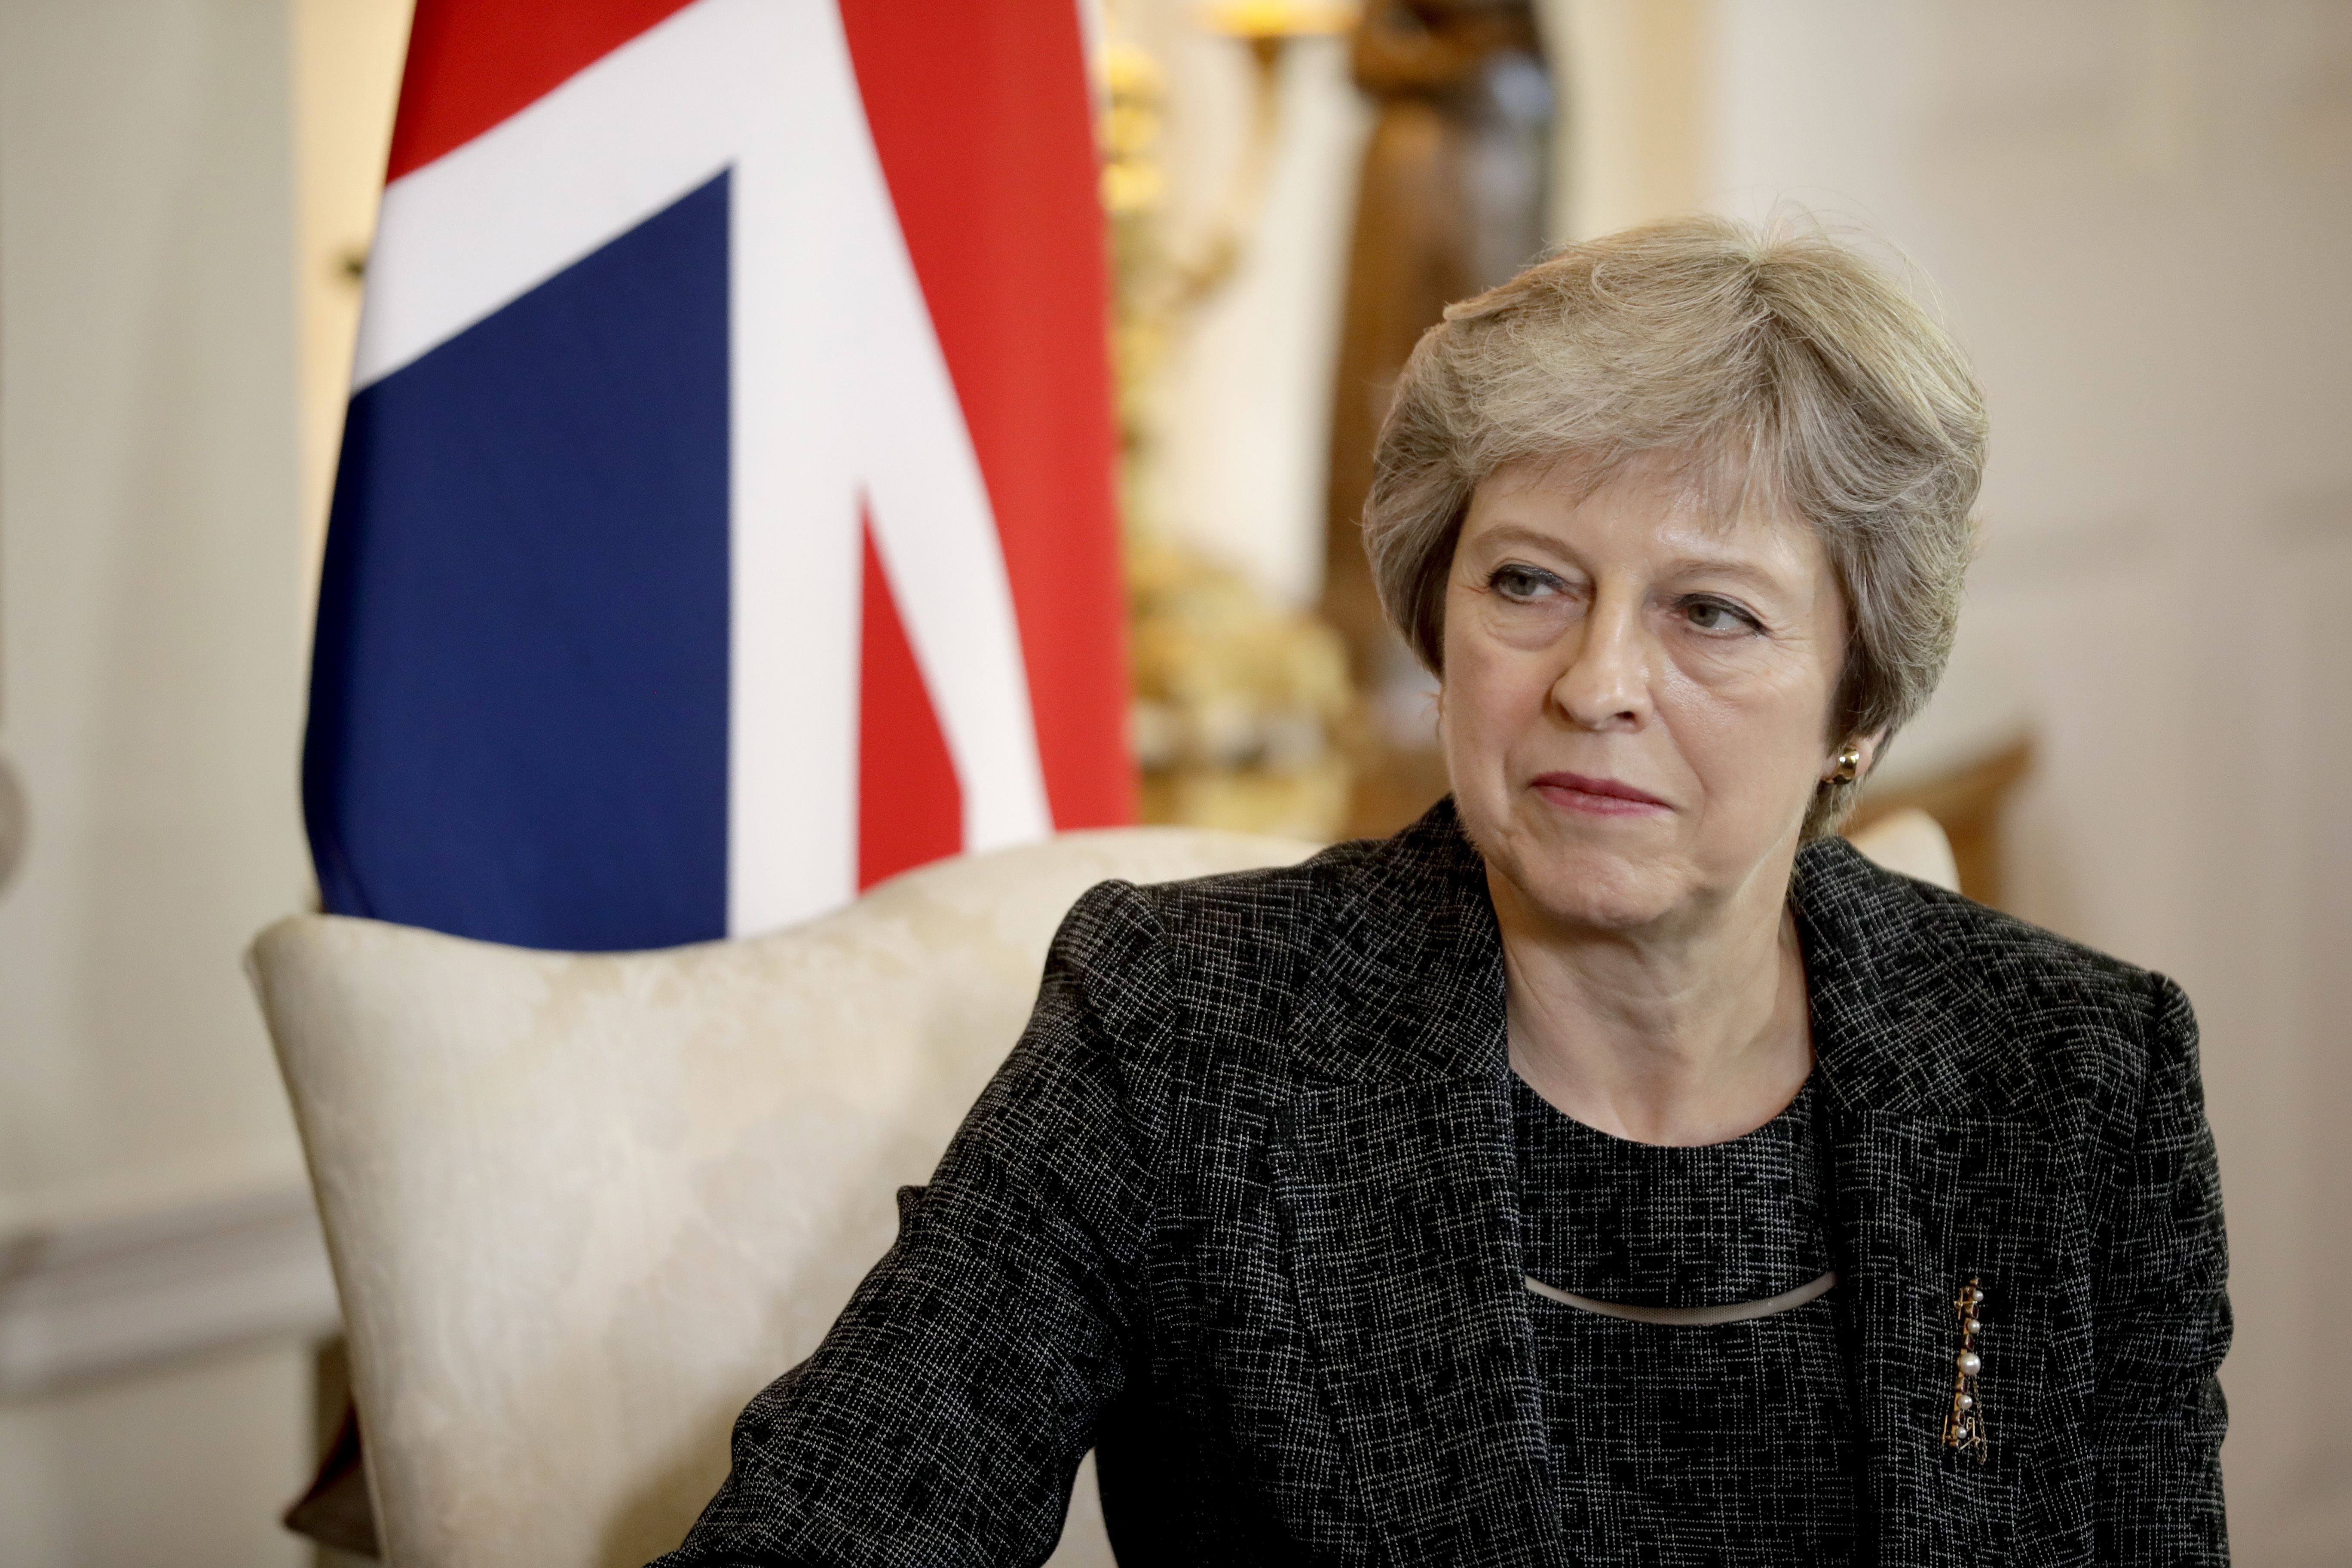 British Prime Minister Theresa May told the BBC that the alternative to her Brexit proposal is no deal.